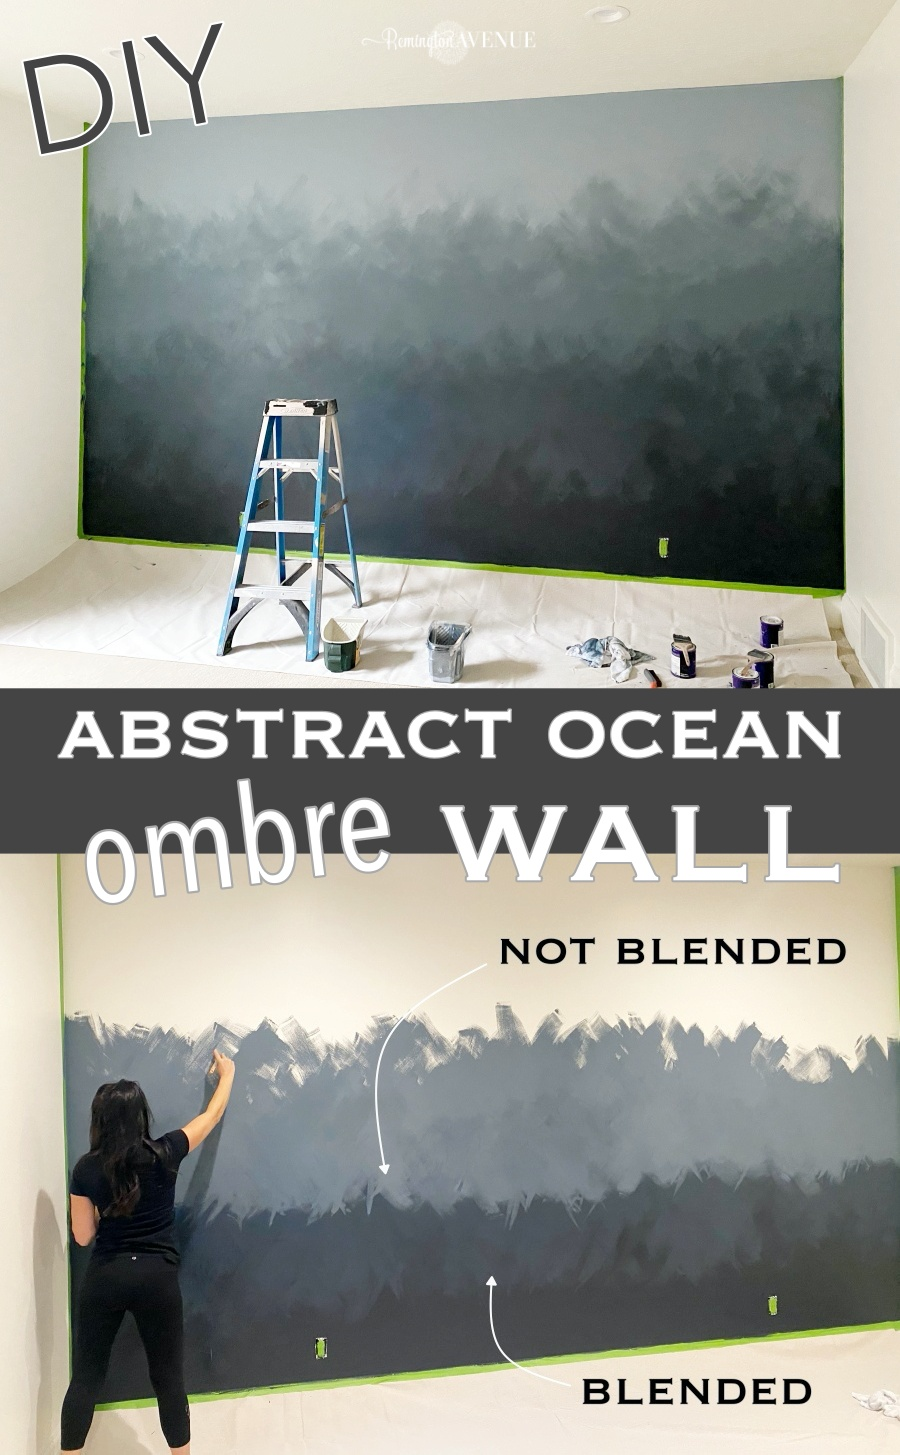 diy abstract ocean ombre wall tutorial